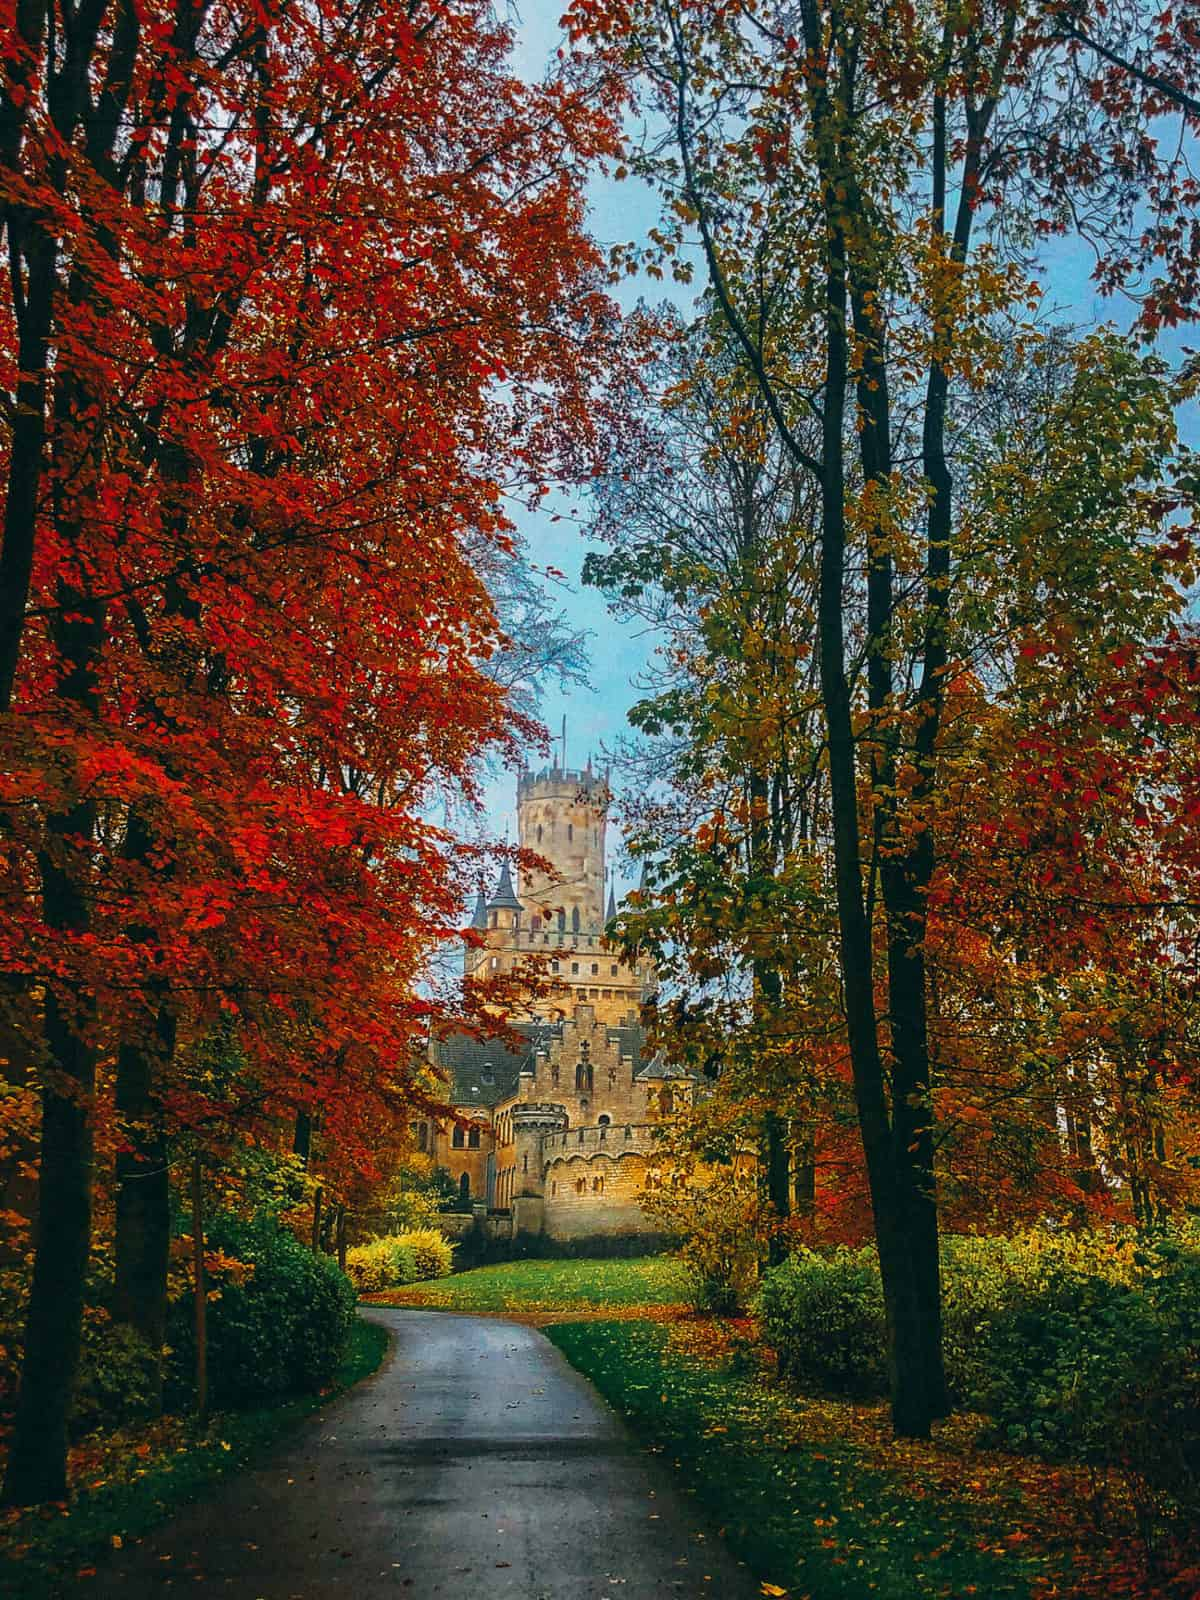 A path lined with autumn leaves leading up to a castle